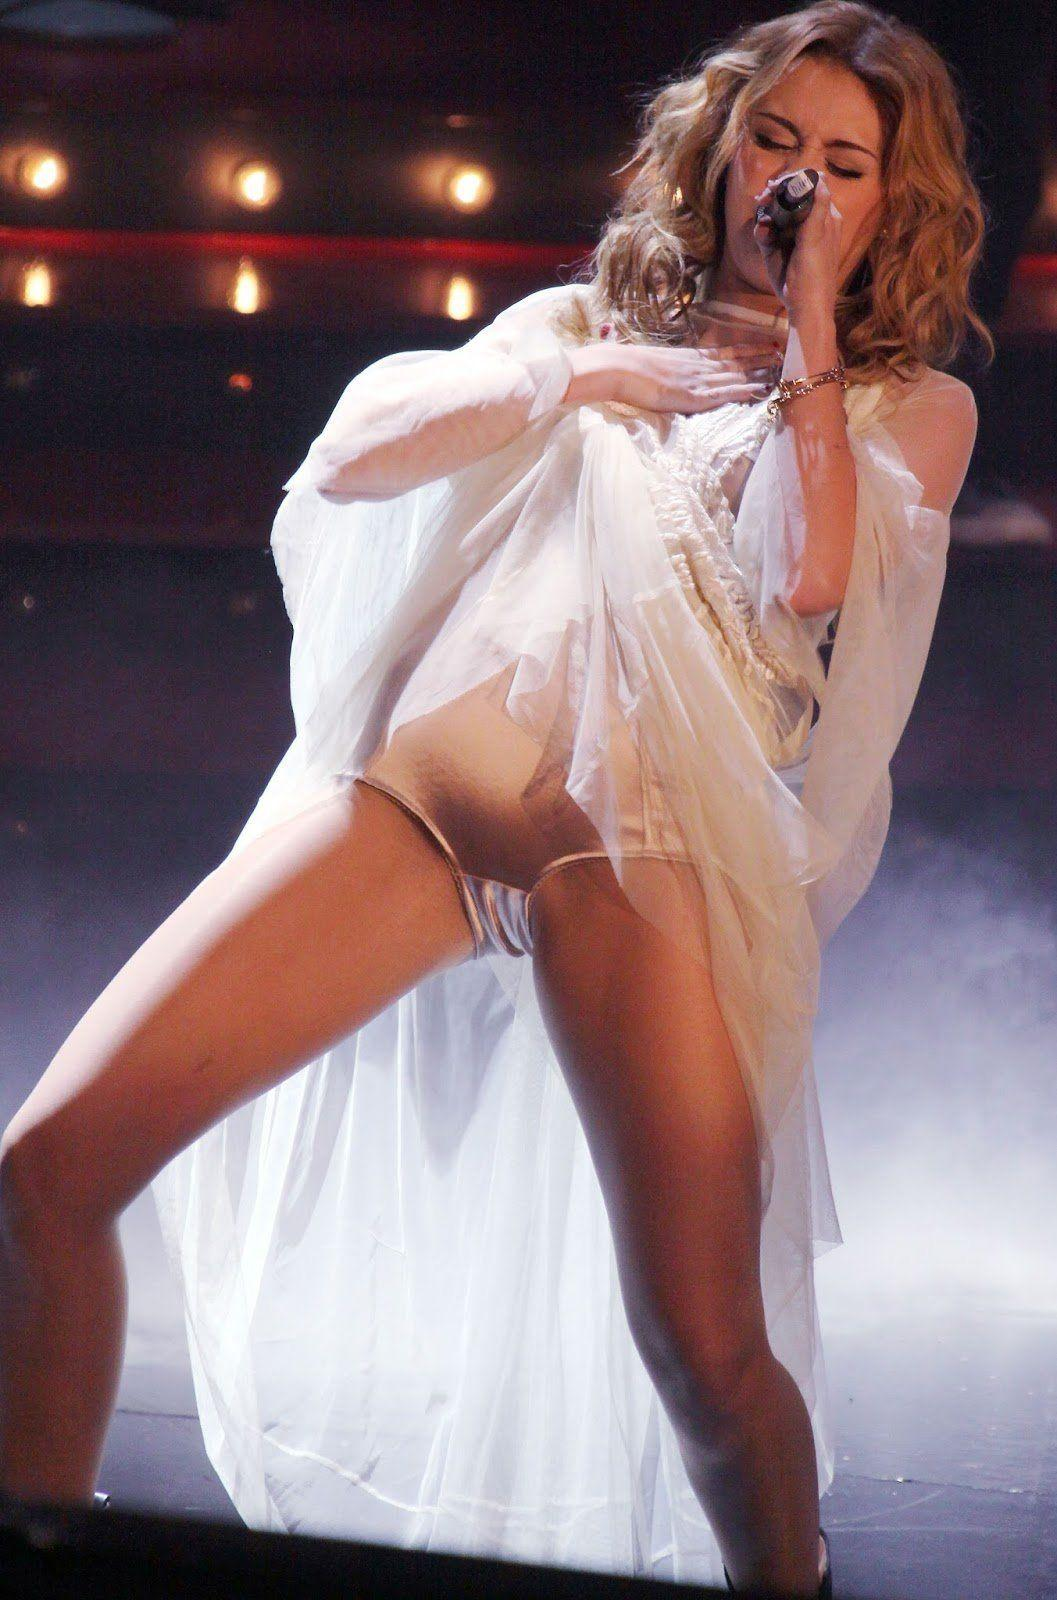 With no upskirt underwear miley